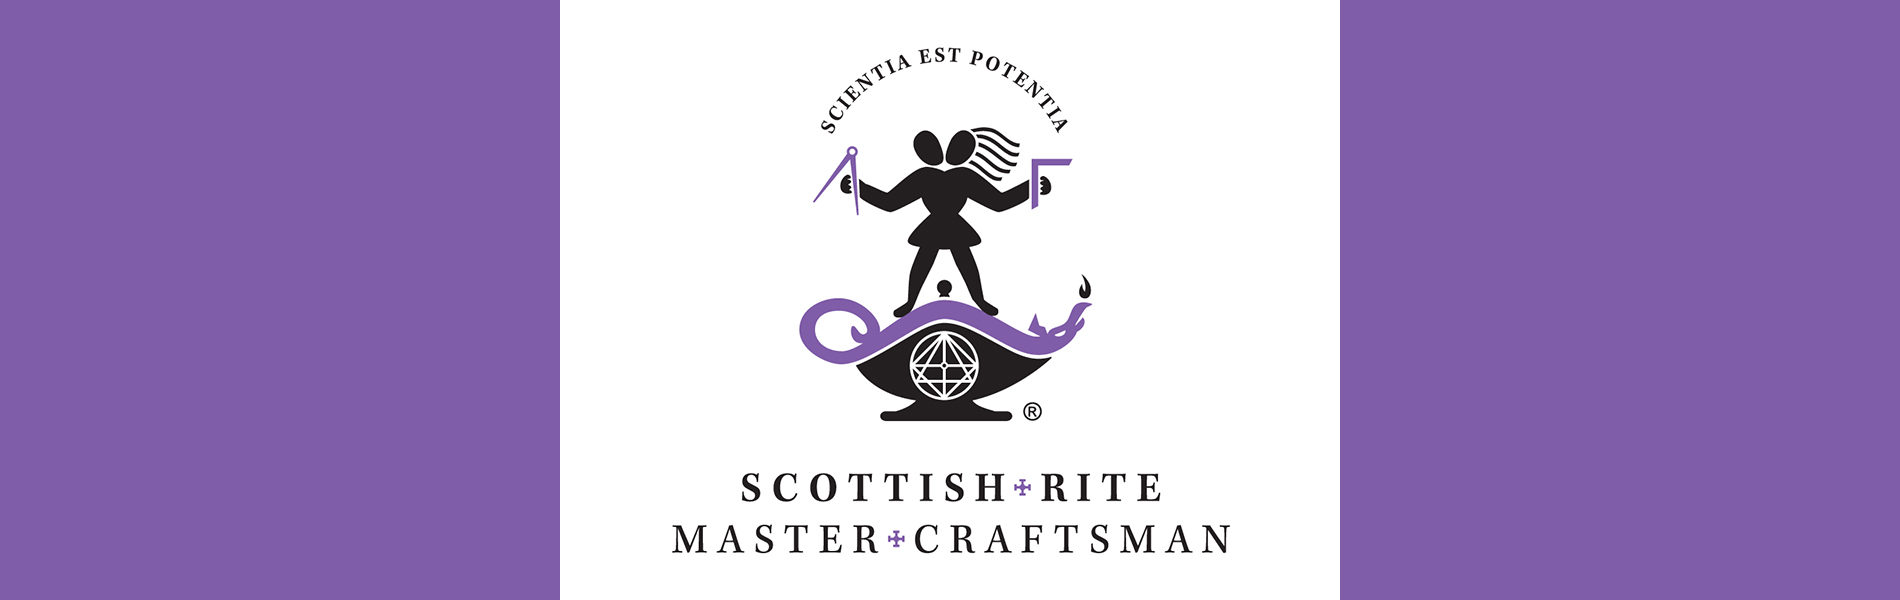 Scottish Rite Master Craftsman Now Available Online!